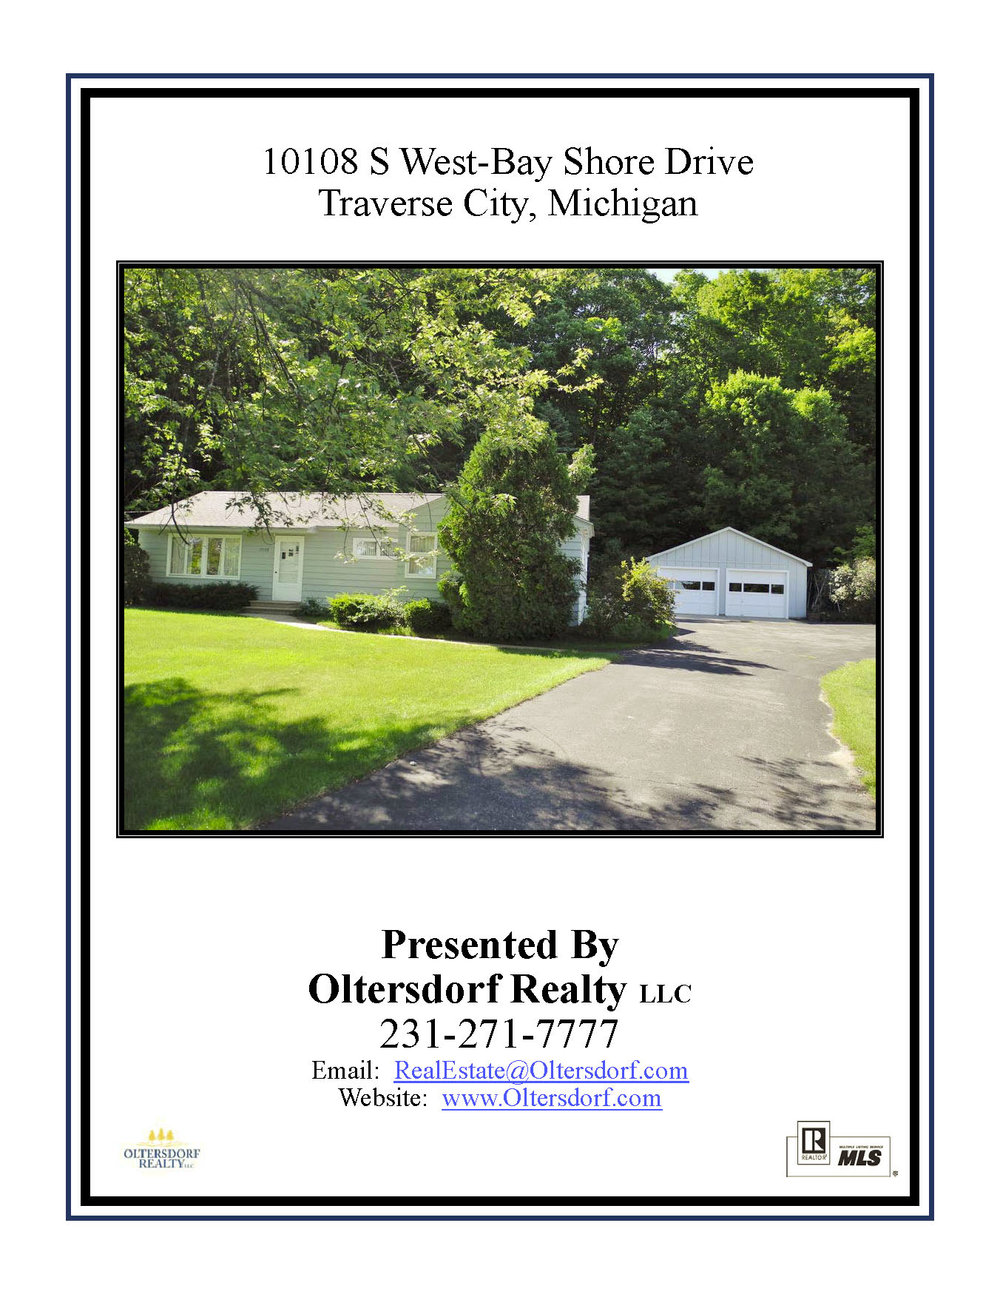 10108 S West Bay Shore Drive, Traverse City, MI – Ranch Home & 106' on West Grand Traverse Bay - Marketing Packet by Oltersdorf Realty LLC (1).jpg